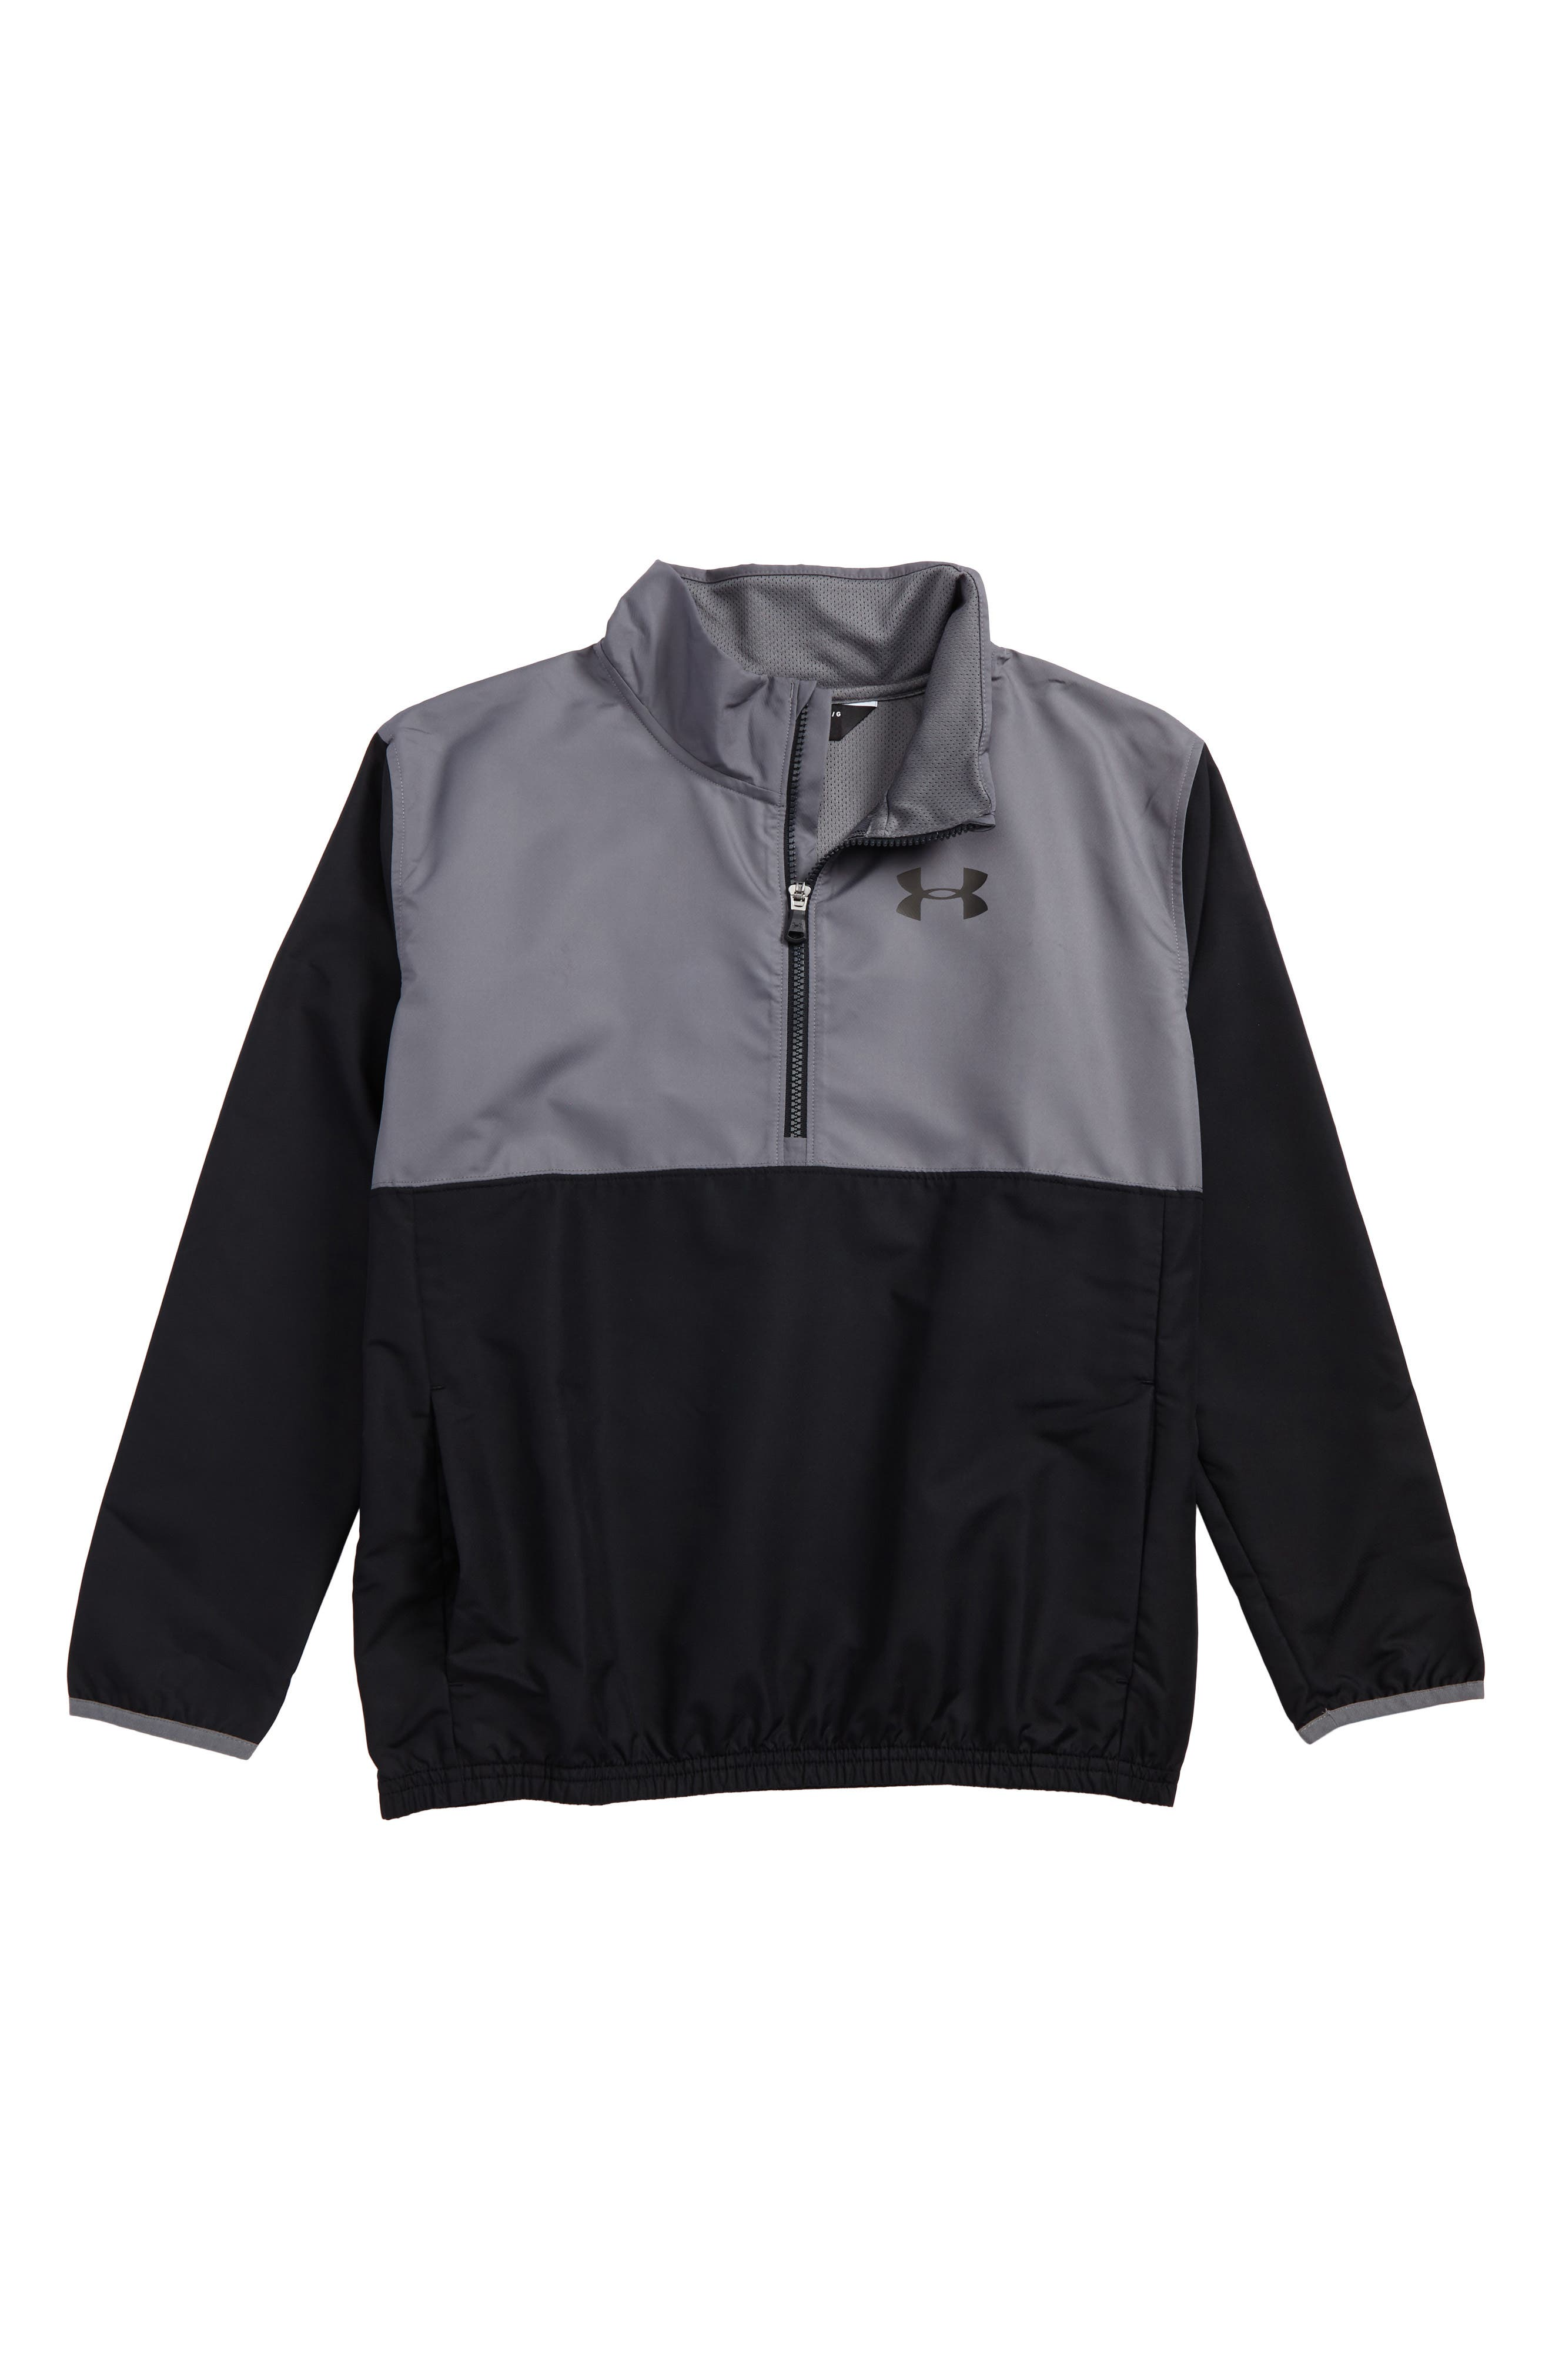 Alternate Image 1 Selected - Under Armour Train to Game Half Zip Pullover (Little Boys & Big Boys)